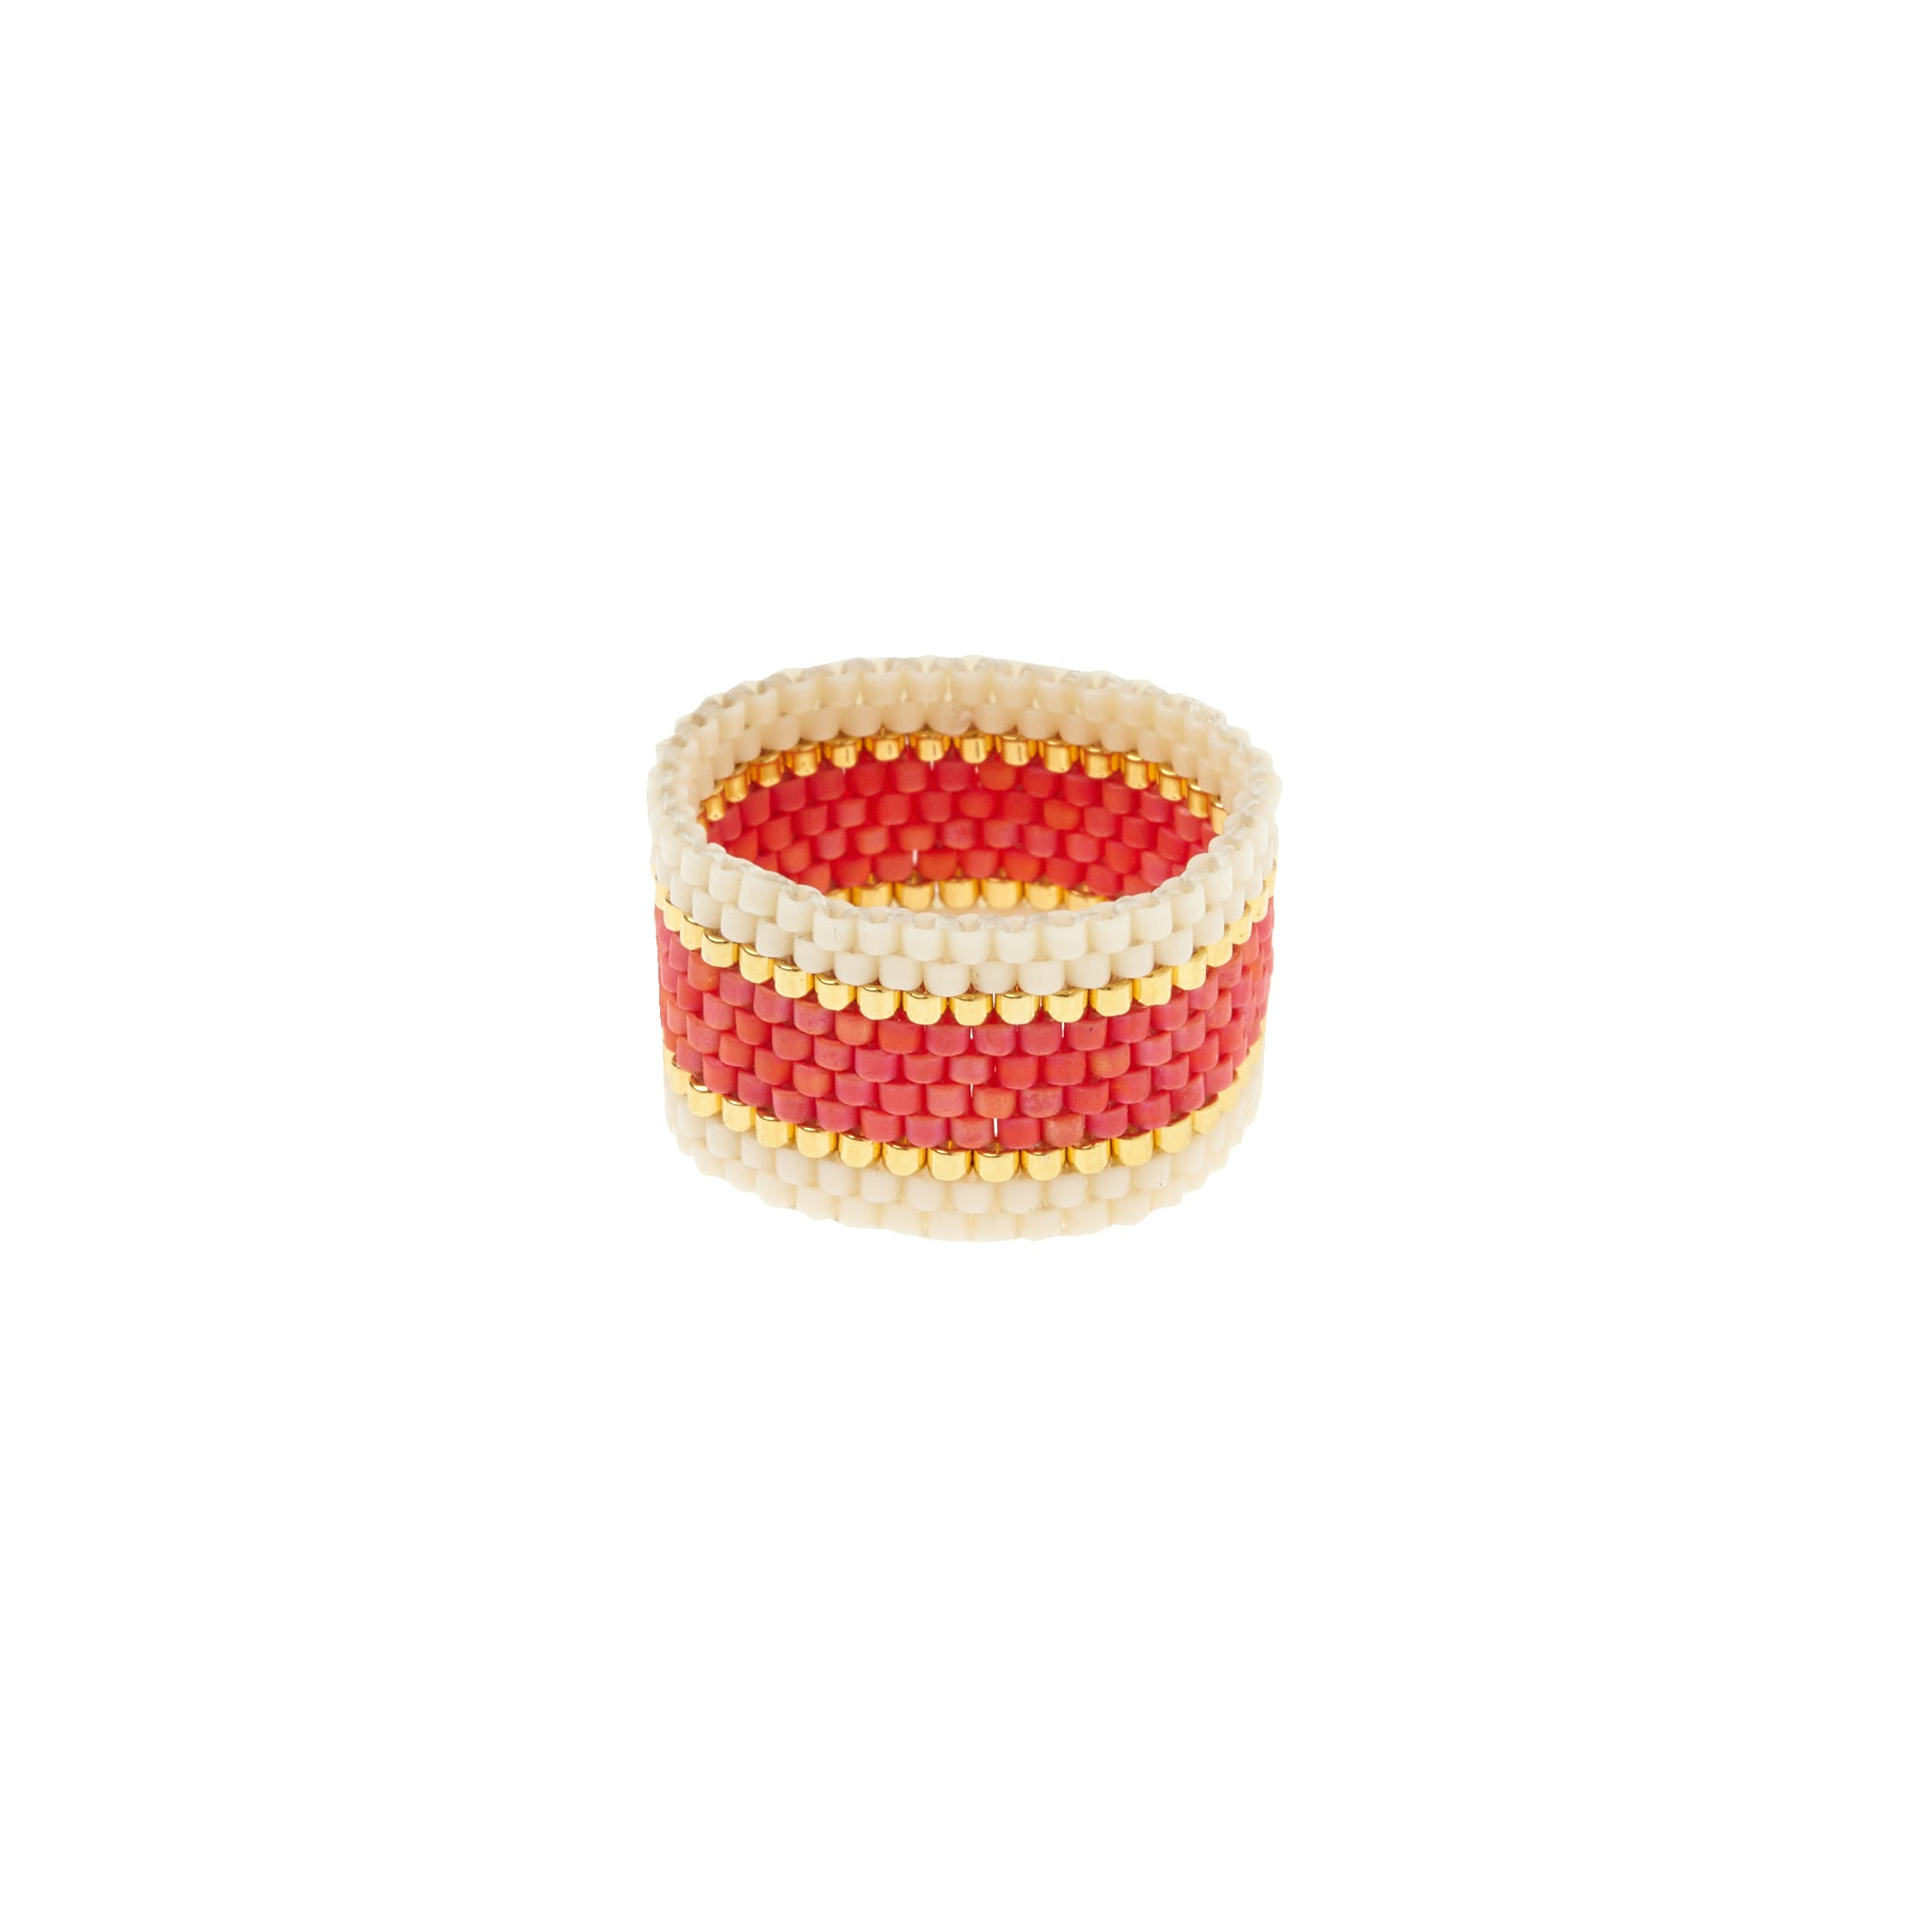 Endito Collection Woven Ring